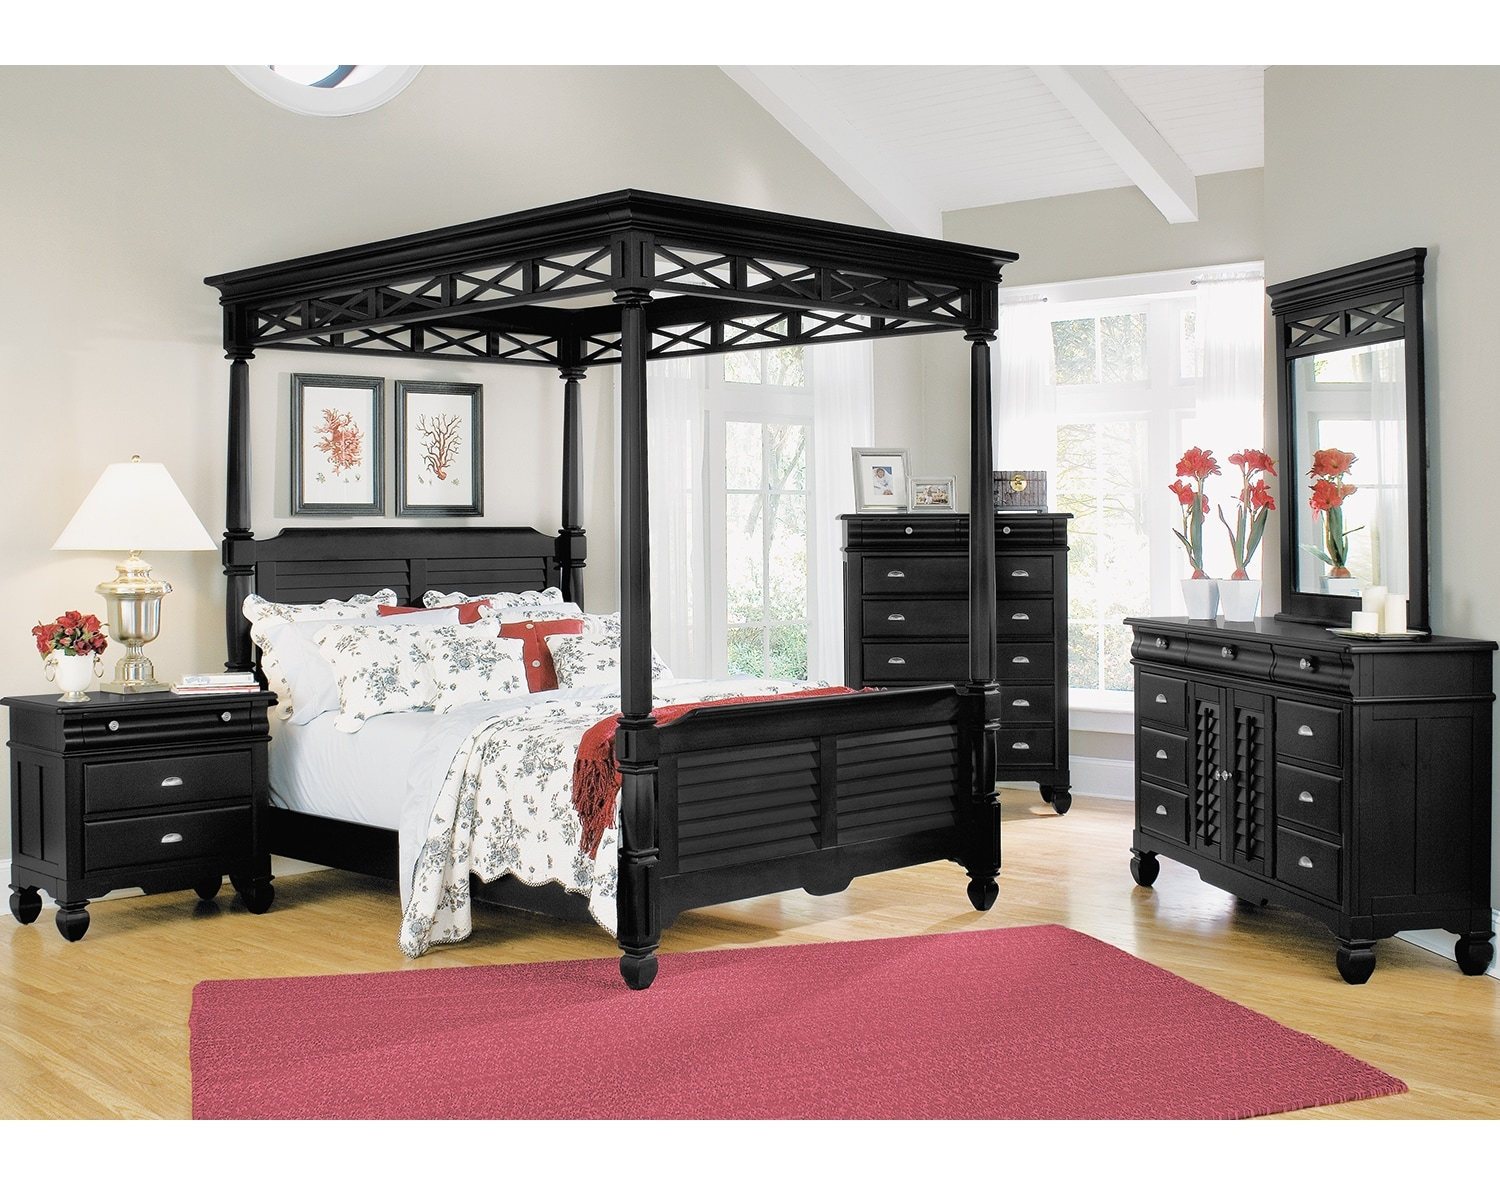 The Plantation Cove Canopy Bedroom Collection - Black